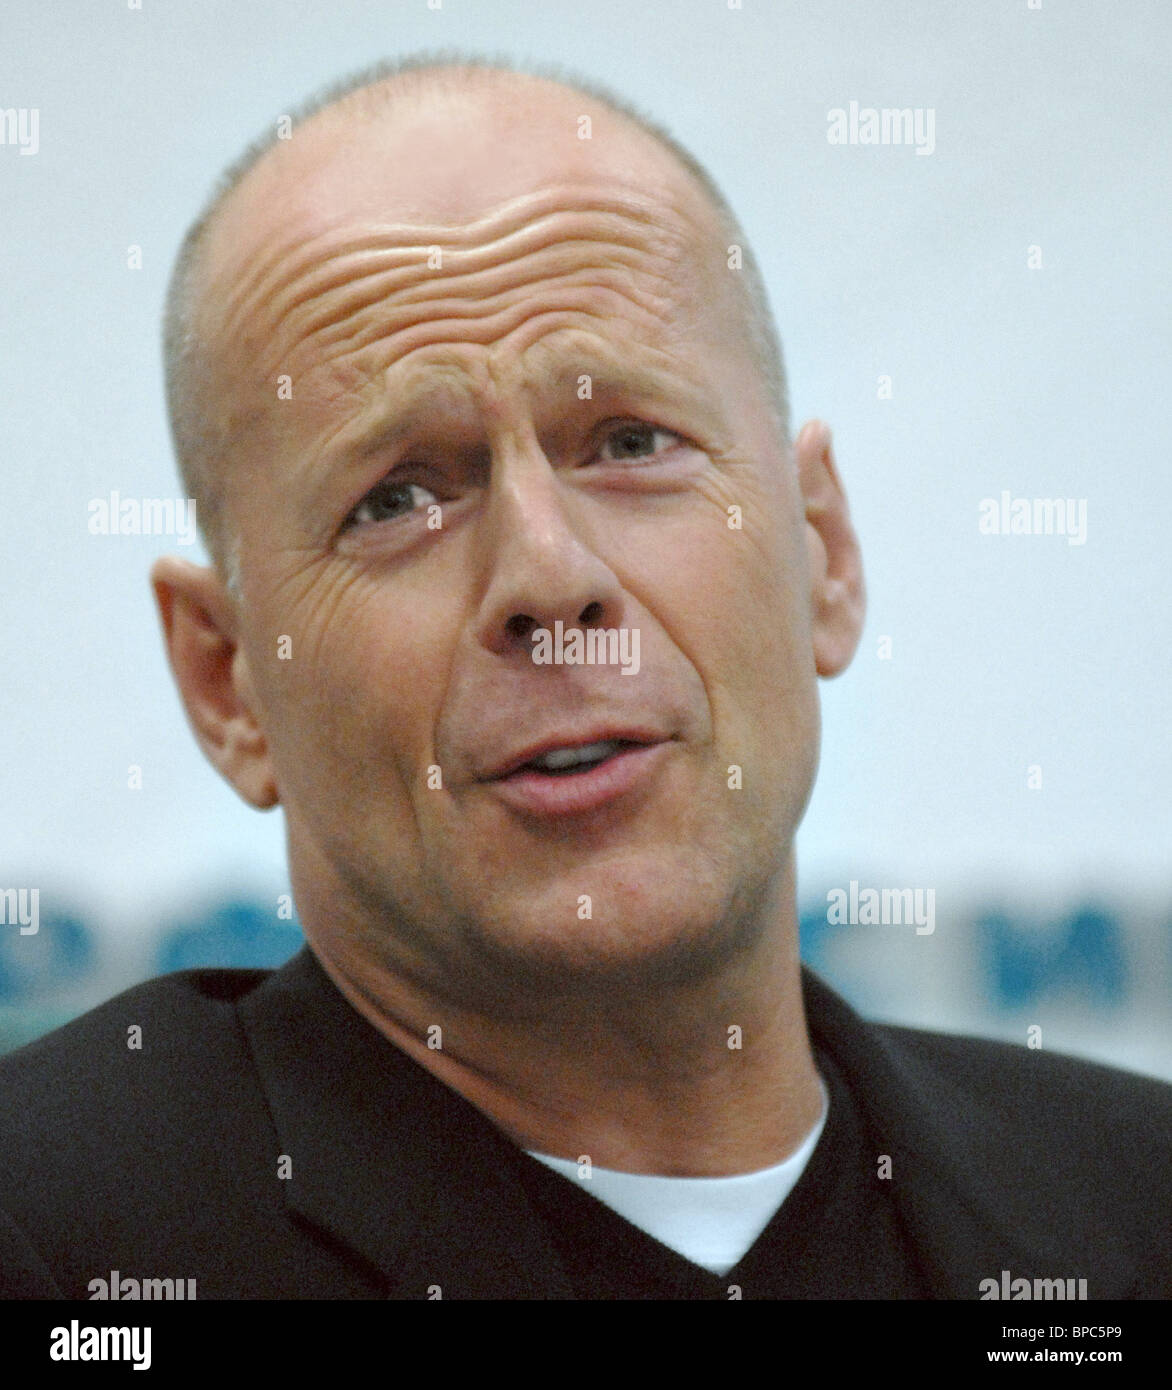 Hollywood actor Bruce Willis presents new Dreamworks' animated film Over the Hedge in Moscow - Stock Image